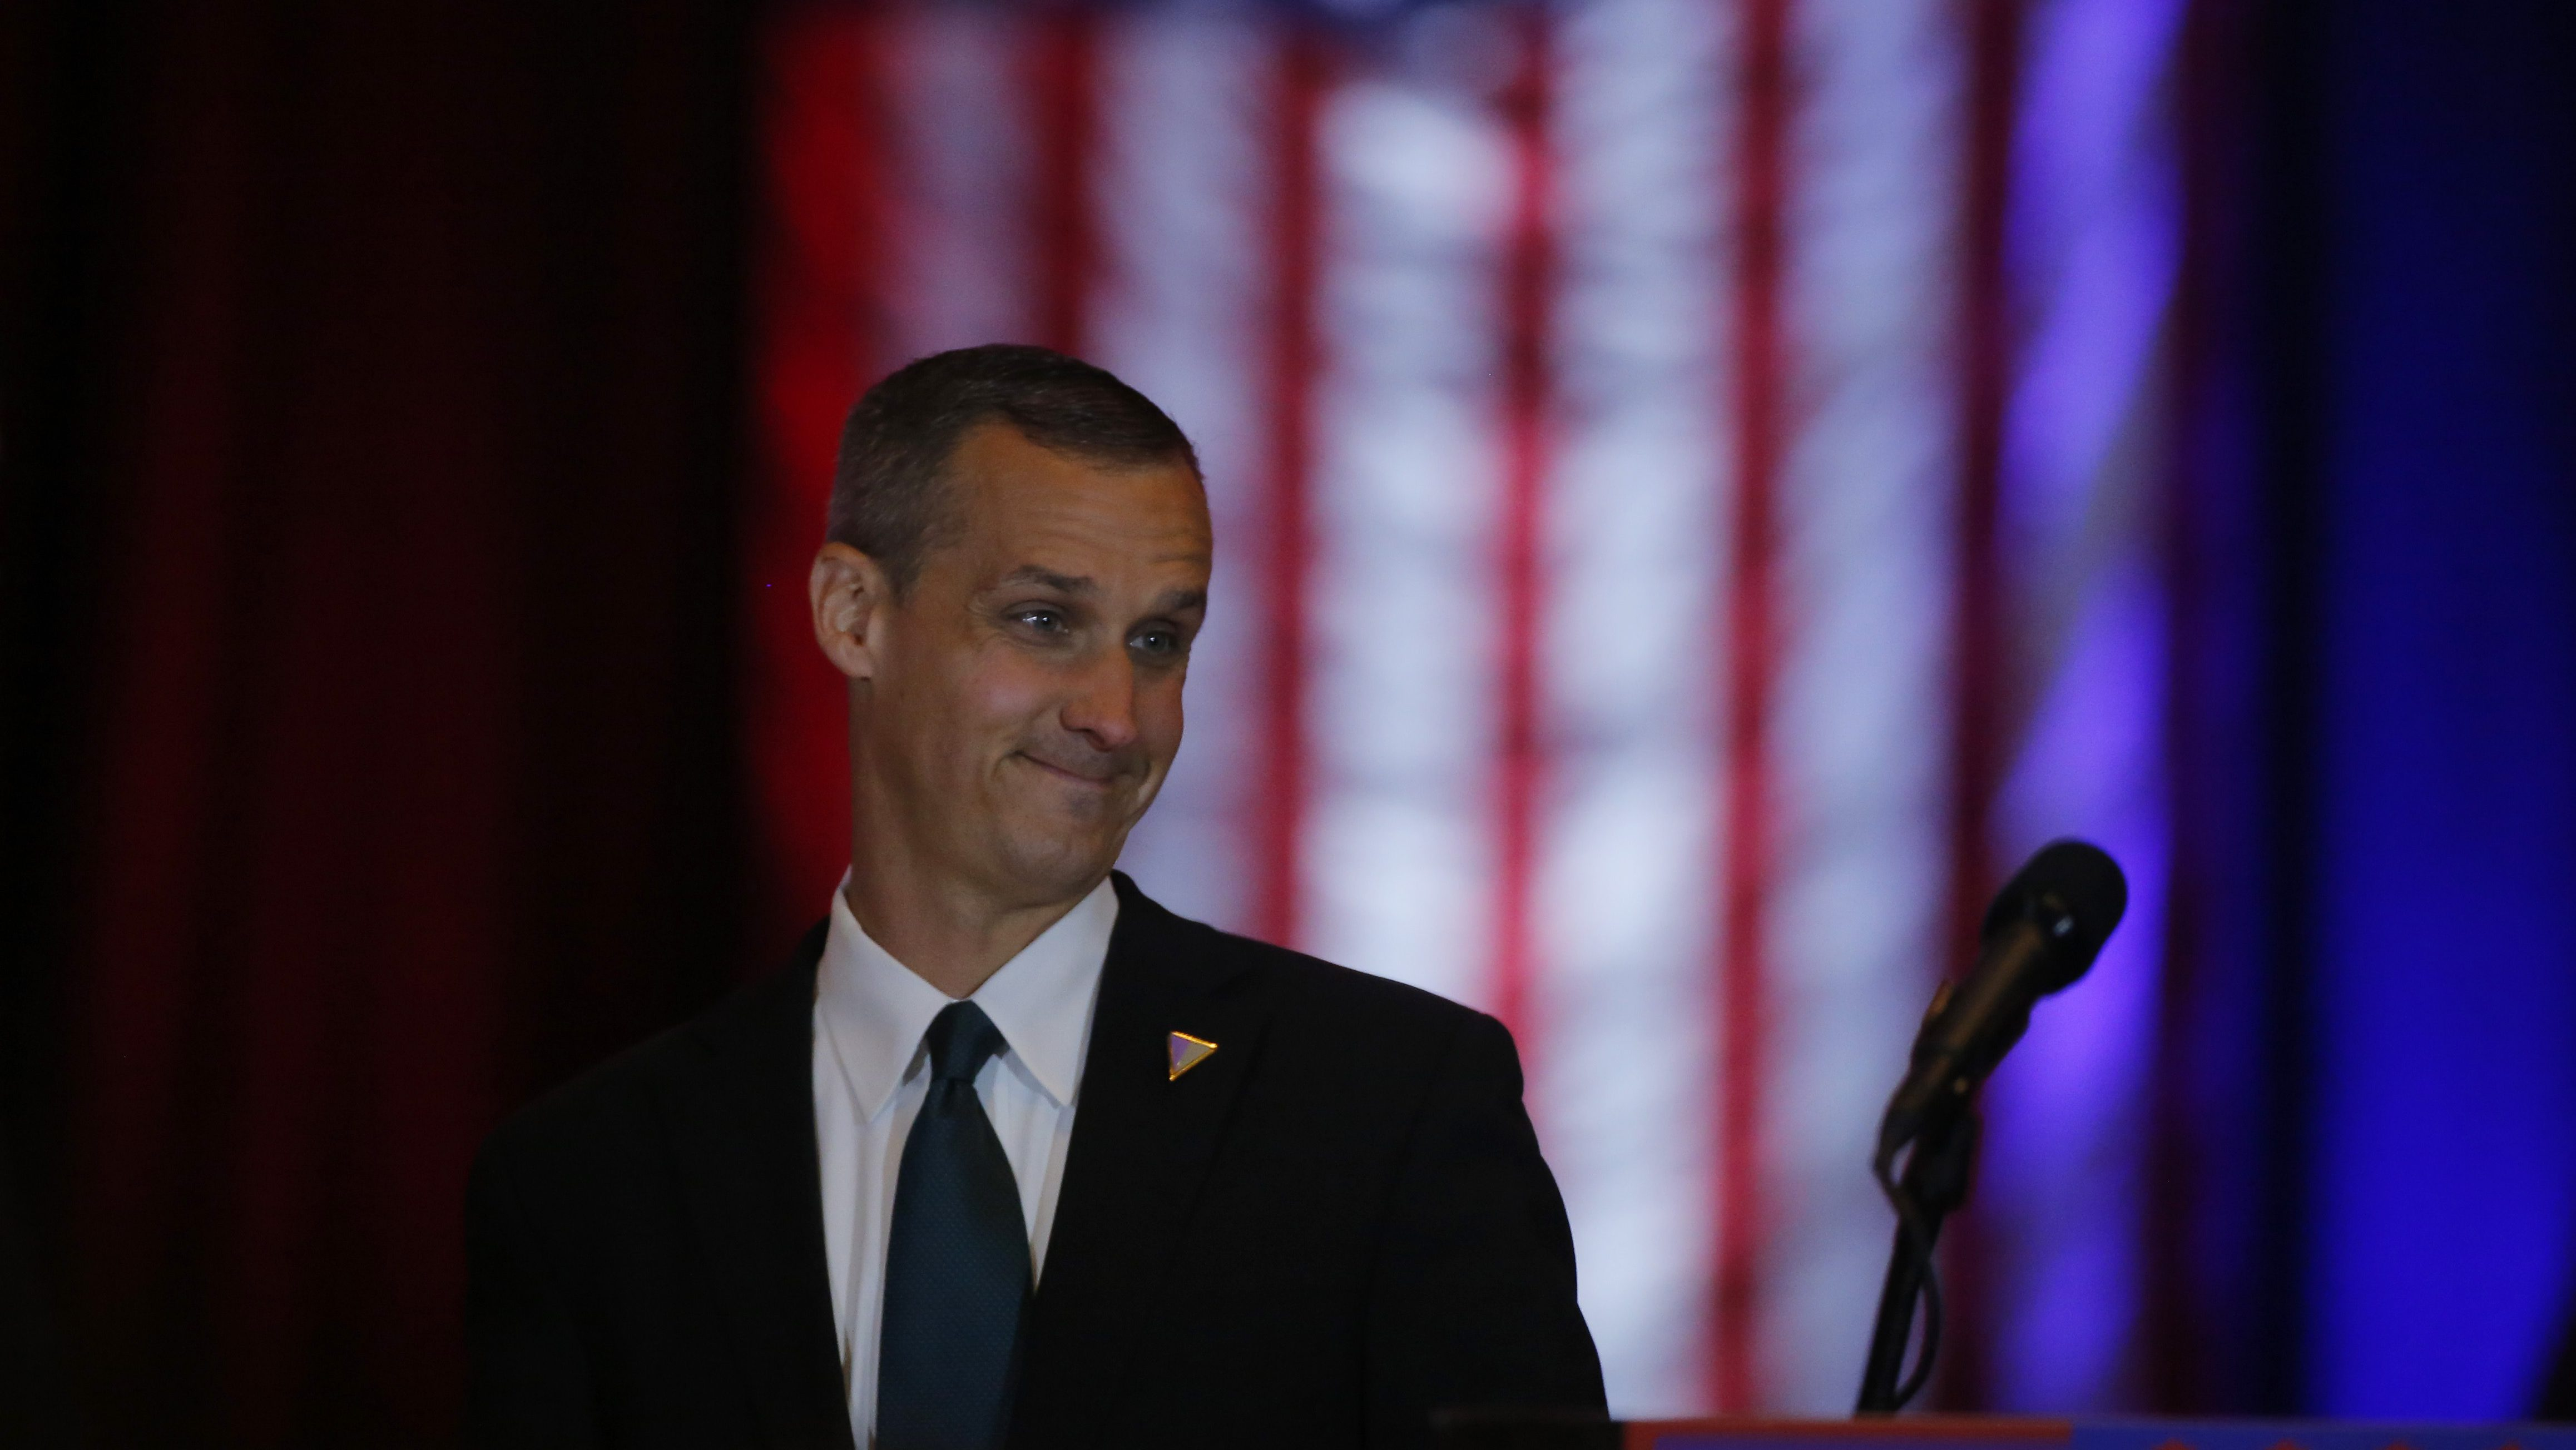 Corey Lewandowski, campaign manager for Republican U.S. presidential candidate Donald Trump, reacts as he walks across the stage at Trump's five state primary night rally at the Trump Tower in New York City U.S., April 26, 2016     REUTERS/Lucas Jackson - RTX2BSWI